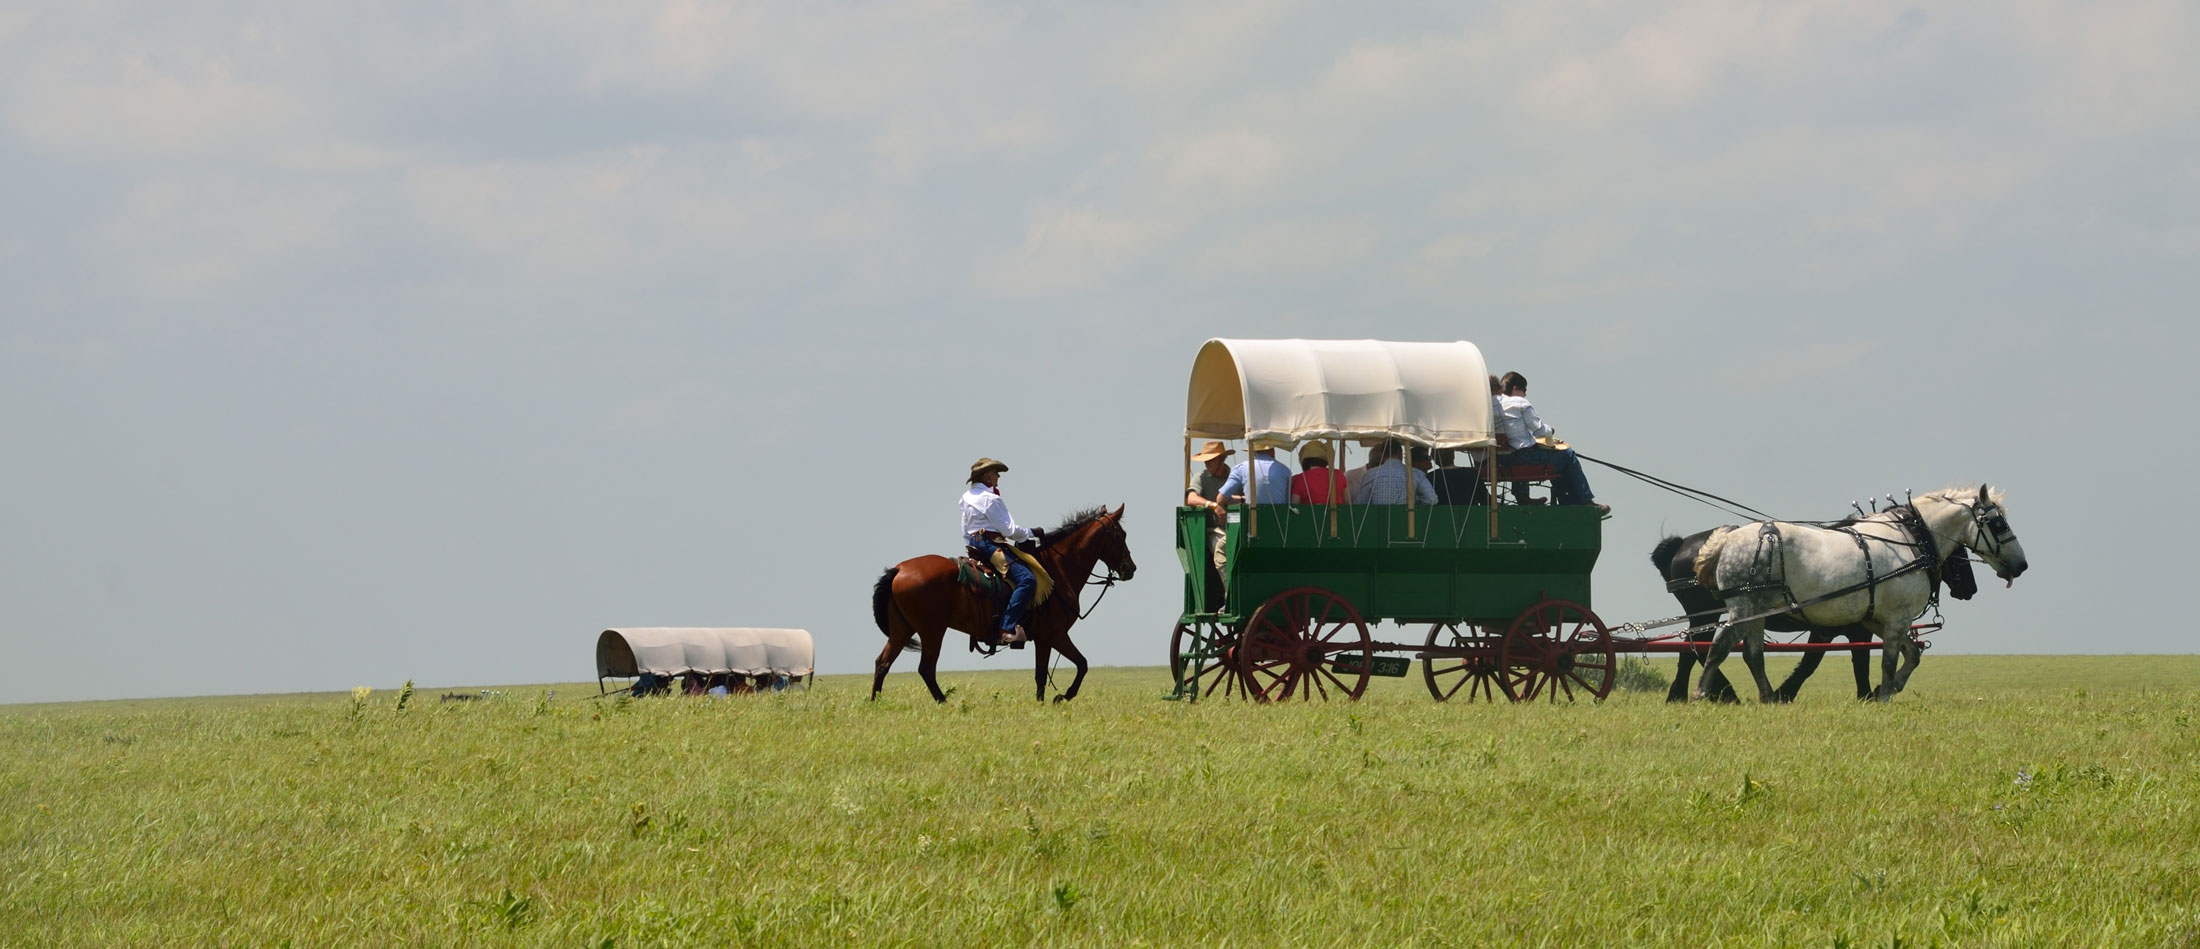 Wagon Train Rides in Montana's Missouri River Country